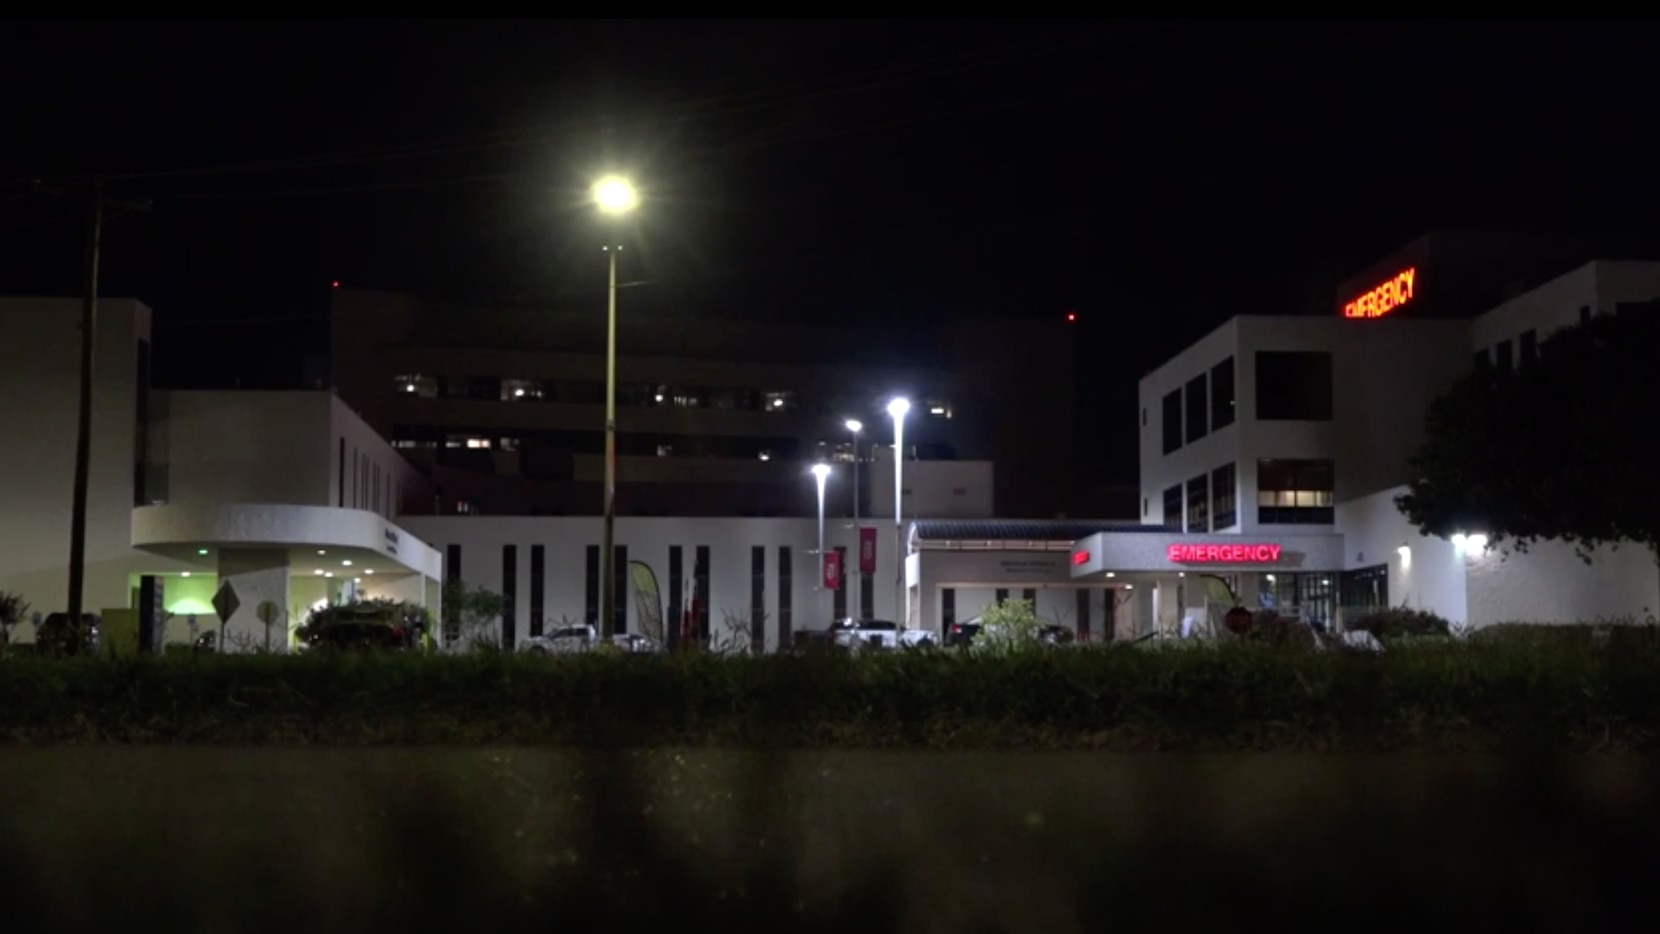 A child was killed in a carjacking outside a hospital in Fort Worth Sunday night, police said.